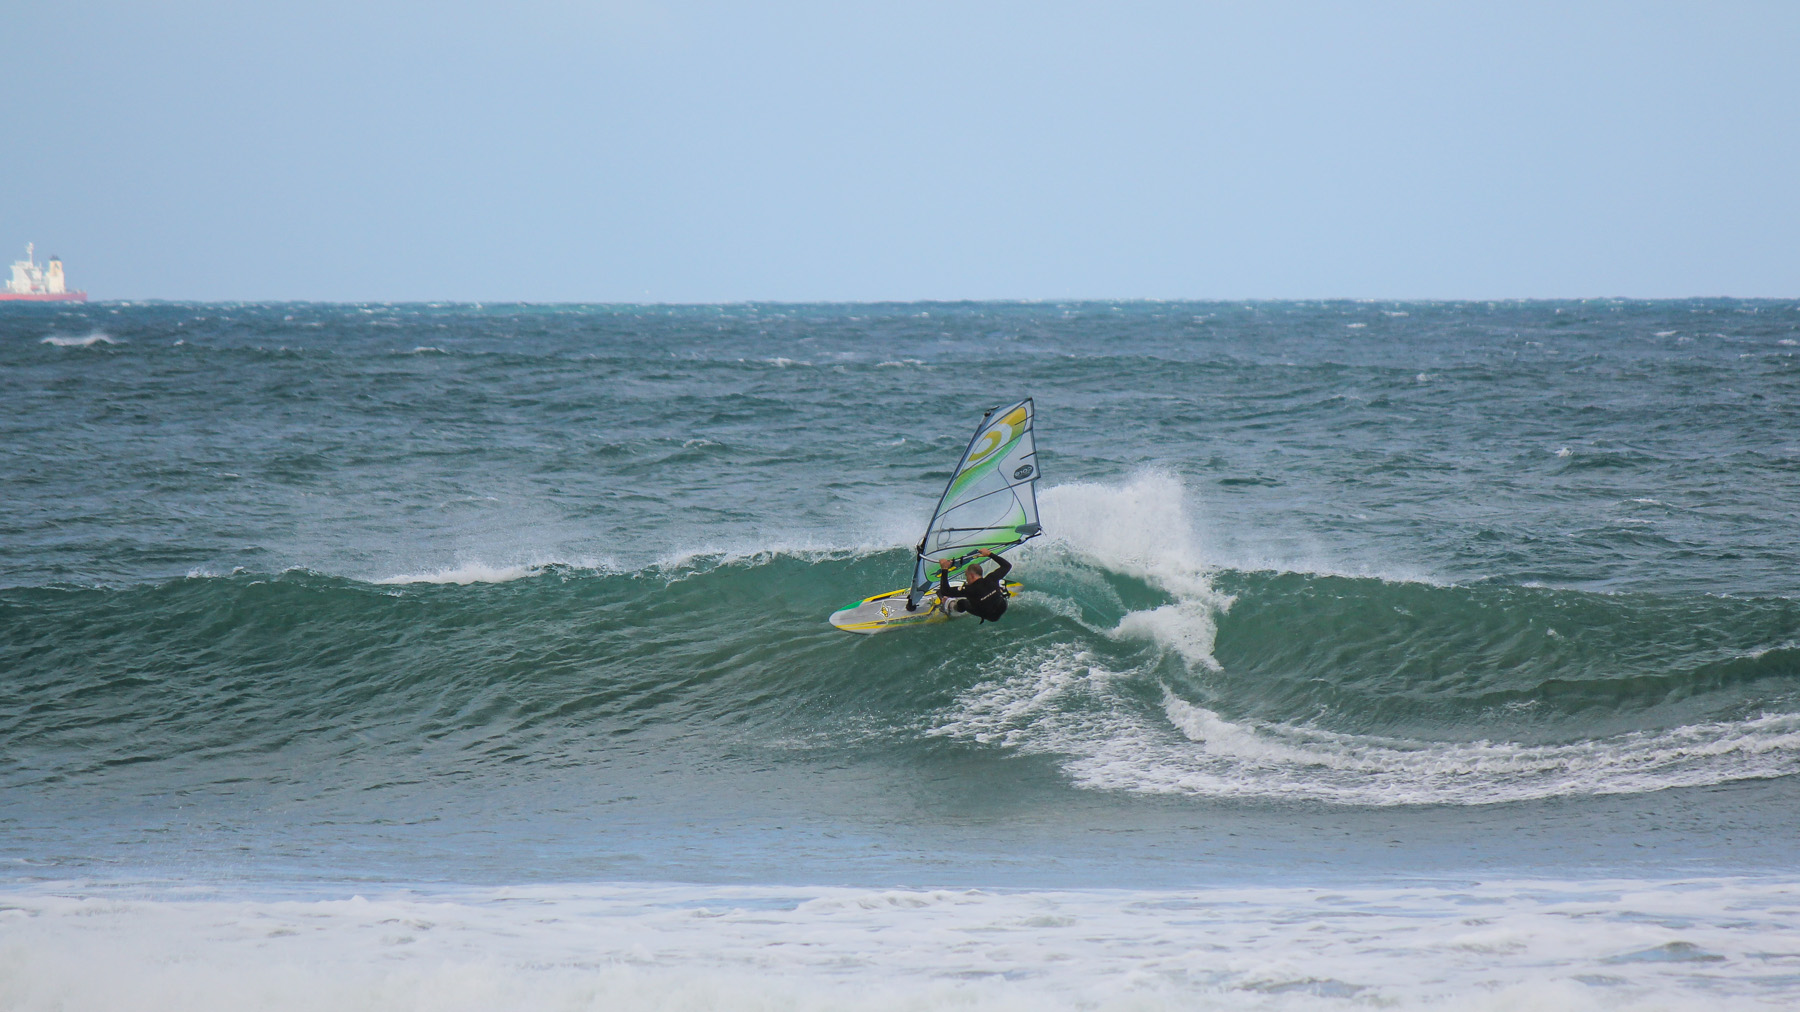 windsurfing at poo point 13th beach victoria